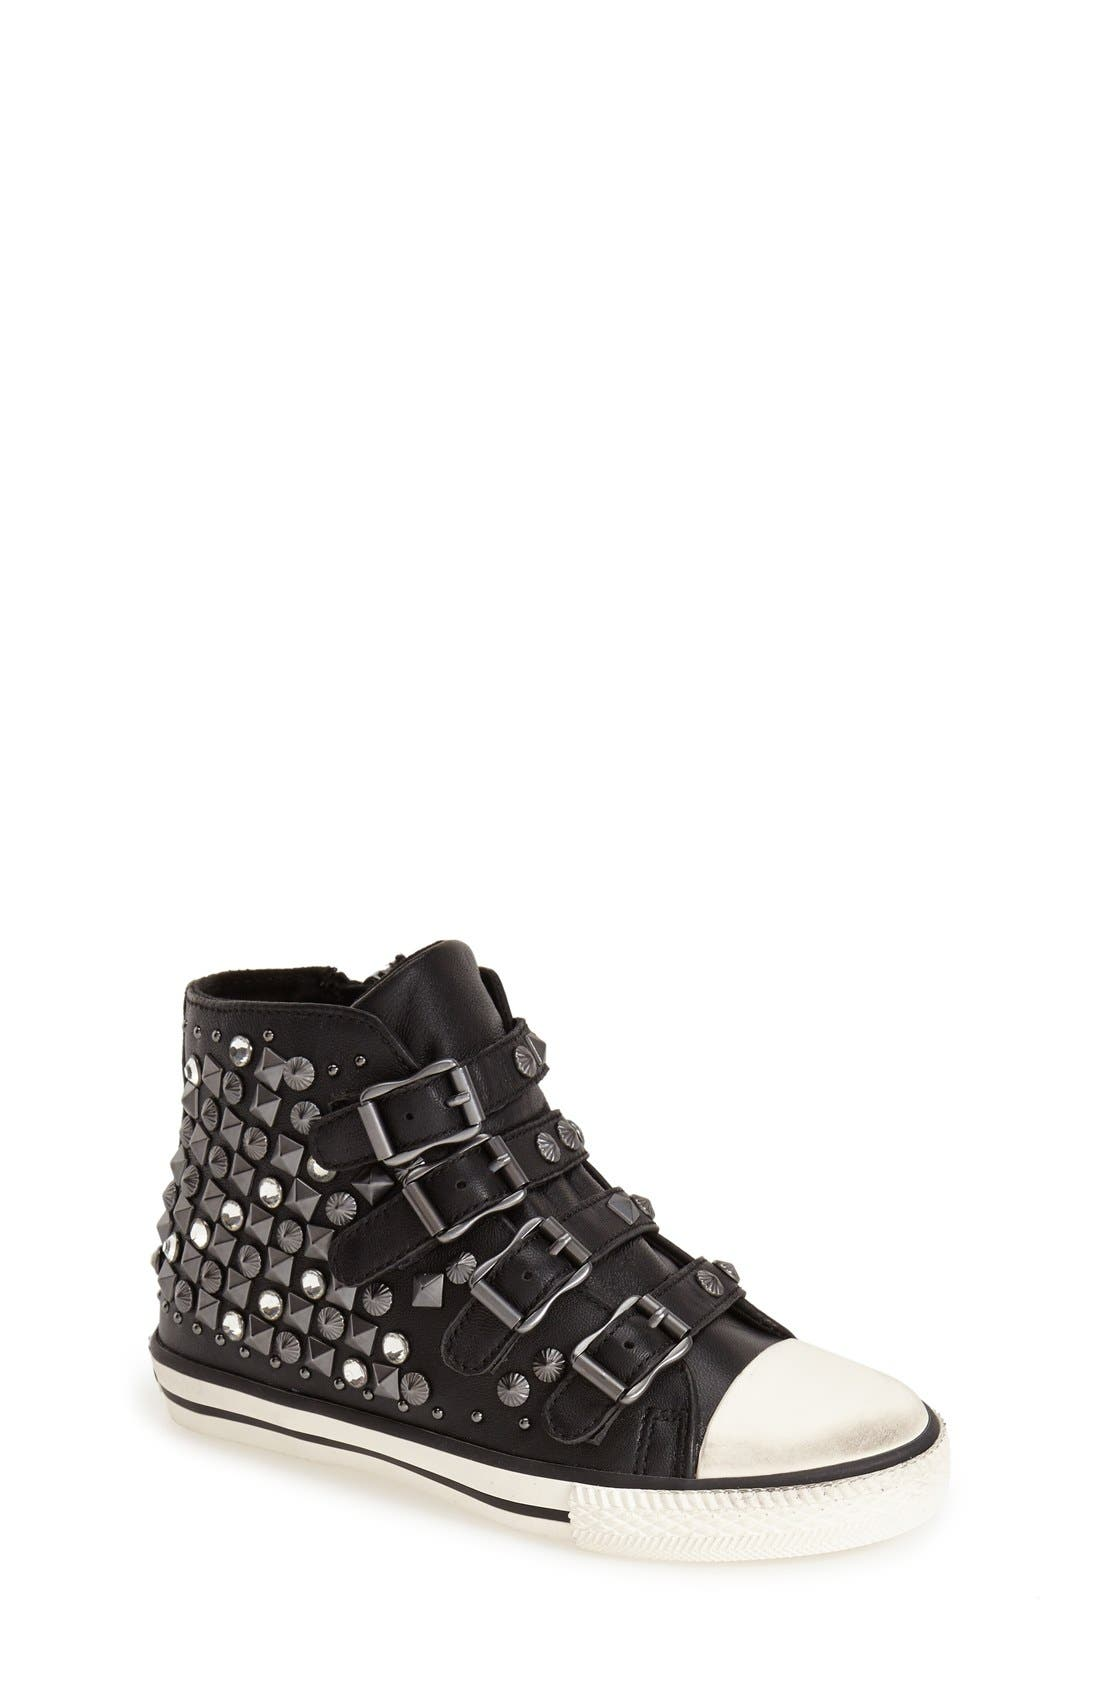 ASH 'Viper' High Top Sneaker